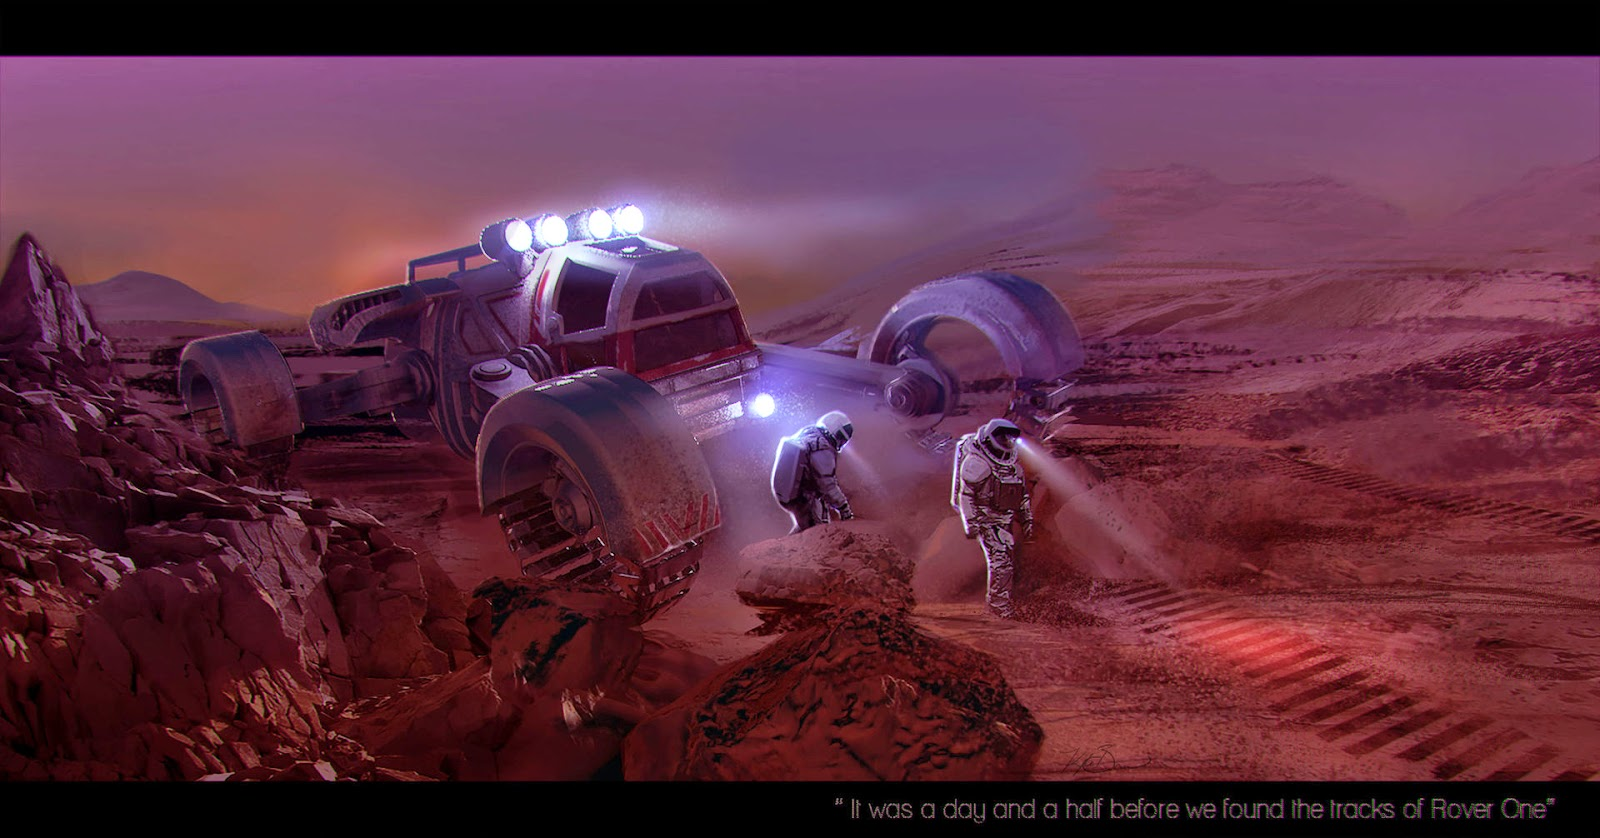 Astronauts exploring Mars by Kyle Brown